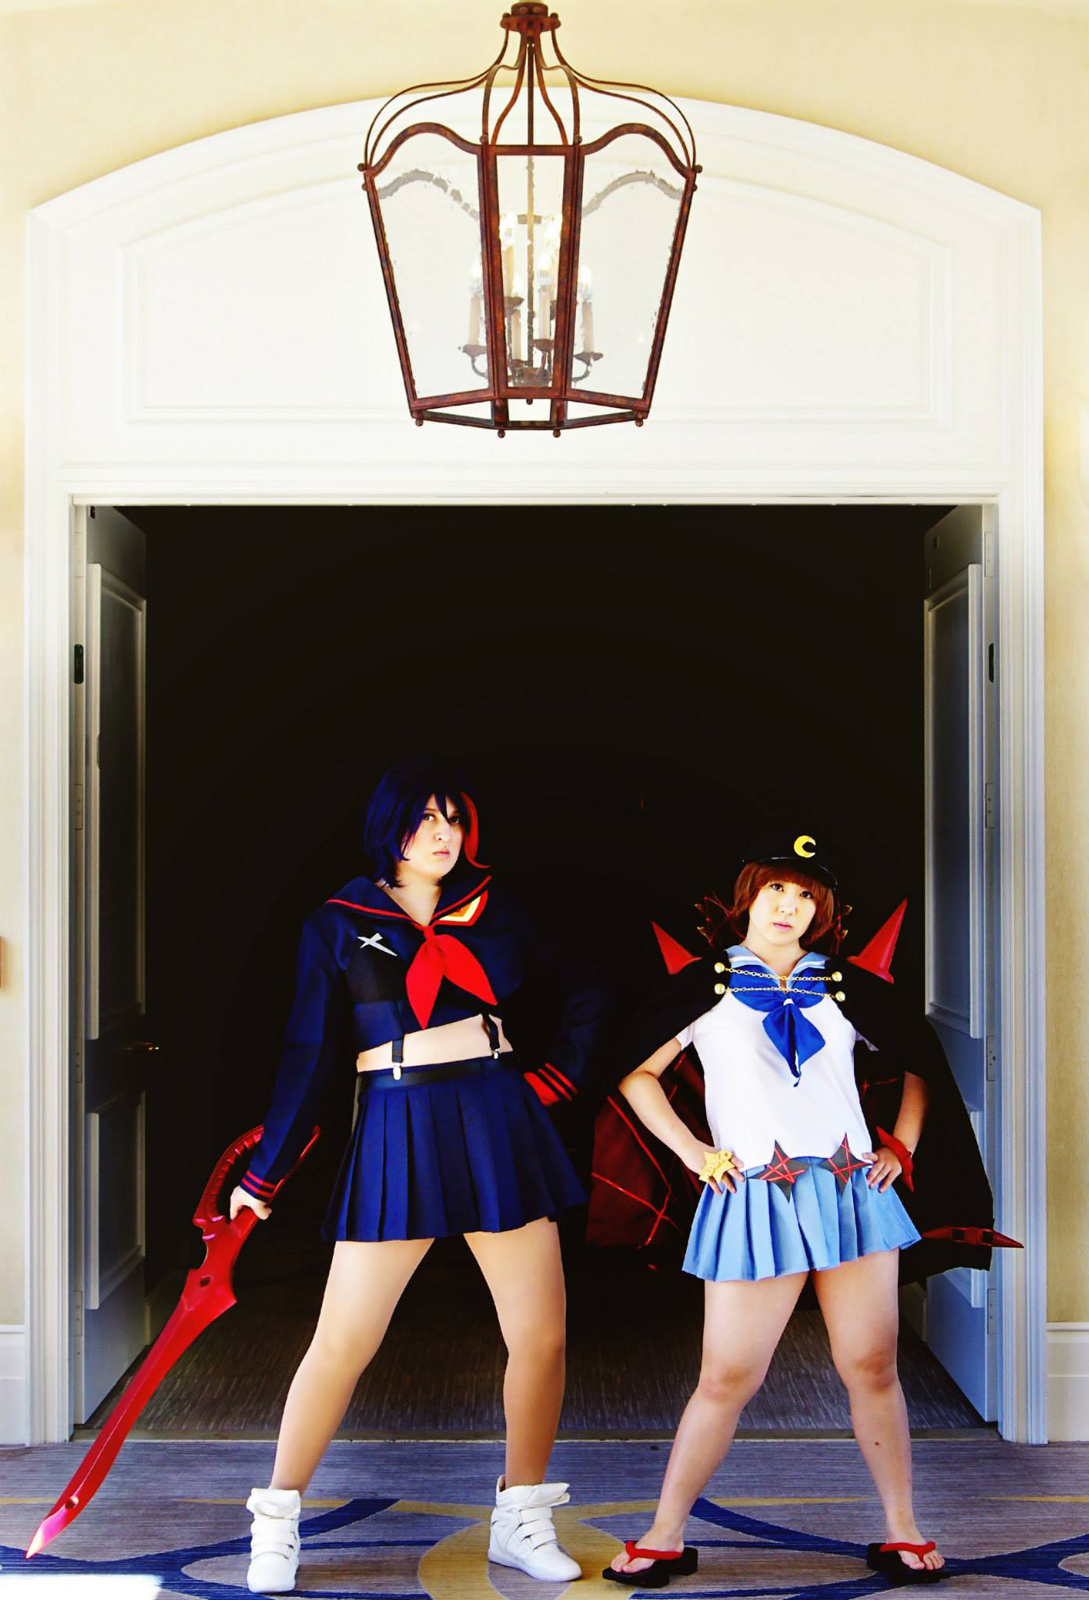 Newest Photo - Click for More Mako Mankanshoku Fight Club Cosplay